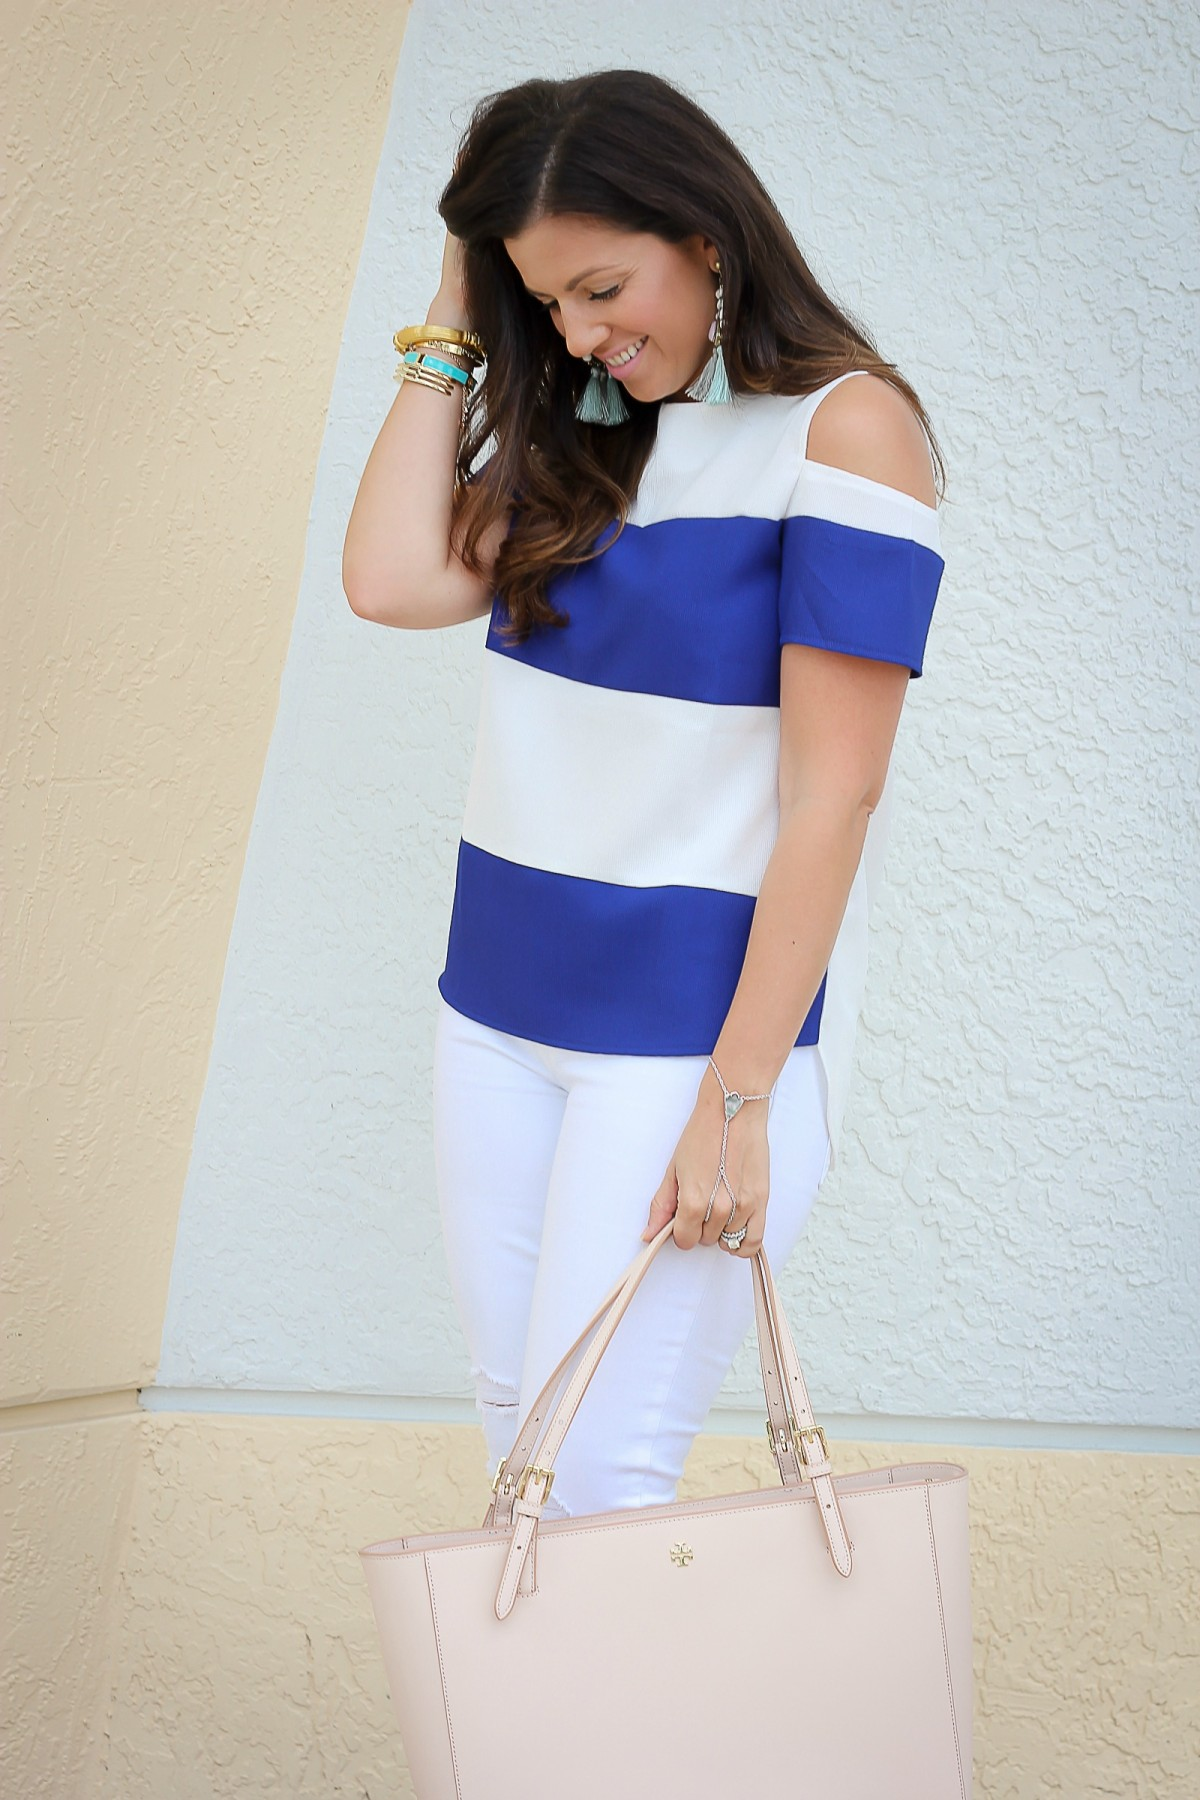 Miami Mommy blogger, Miami lifestyle blogger, Jaime Cittadino